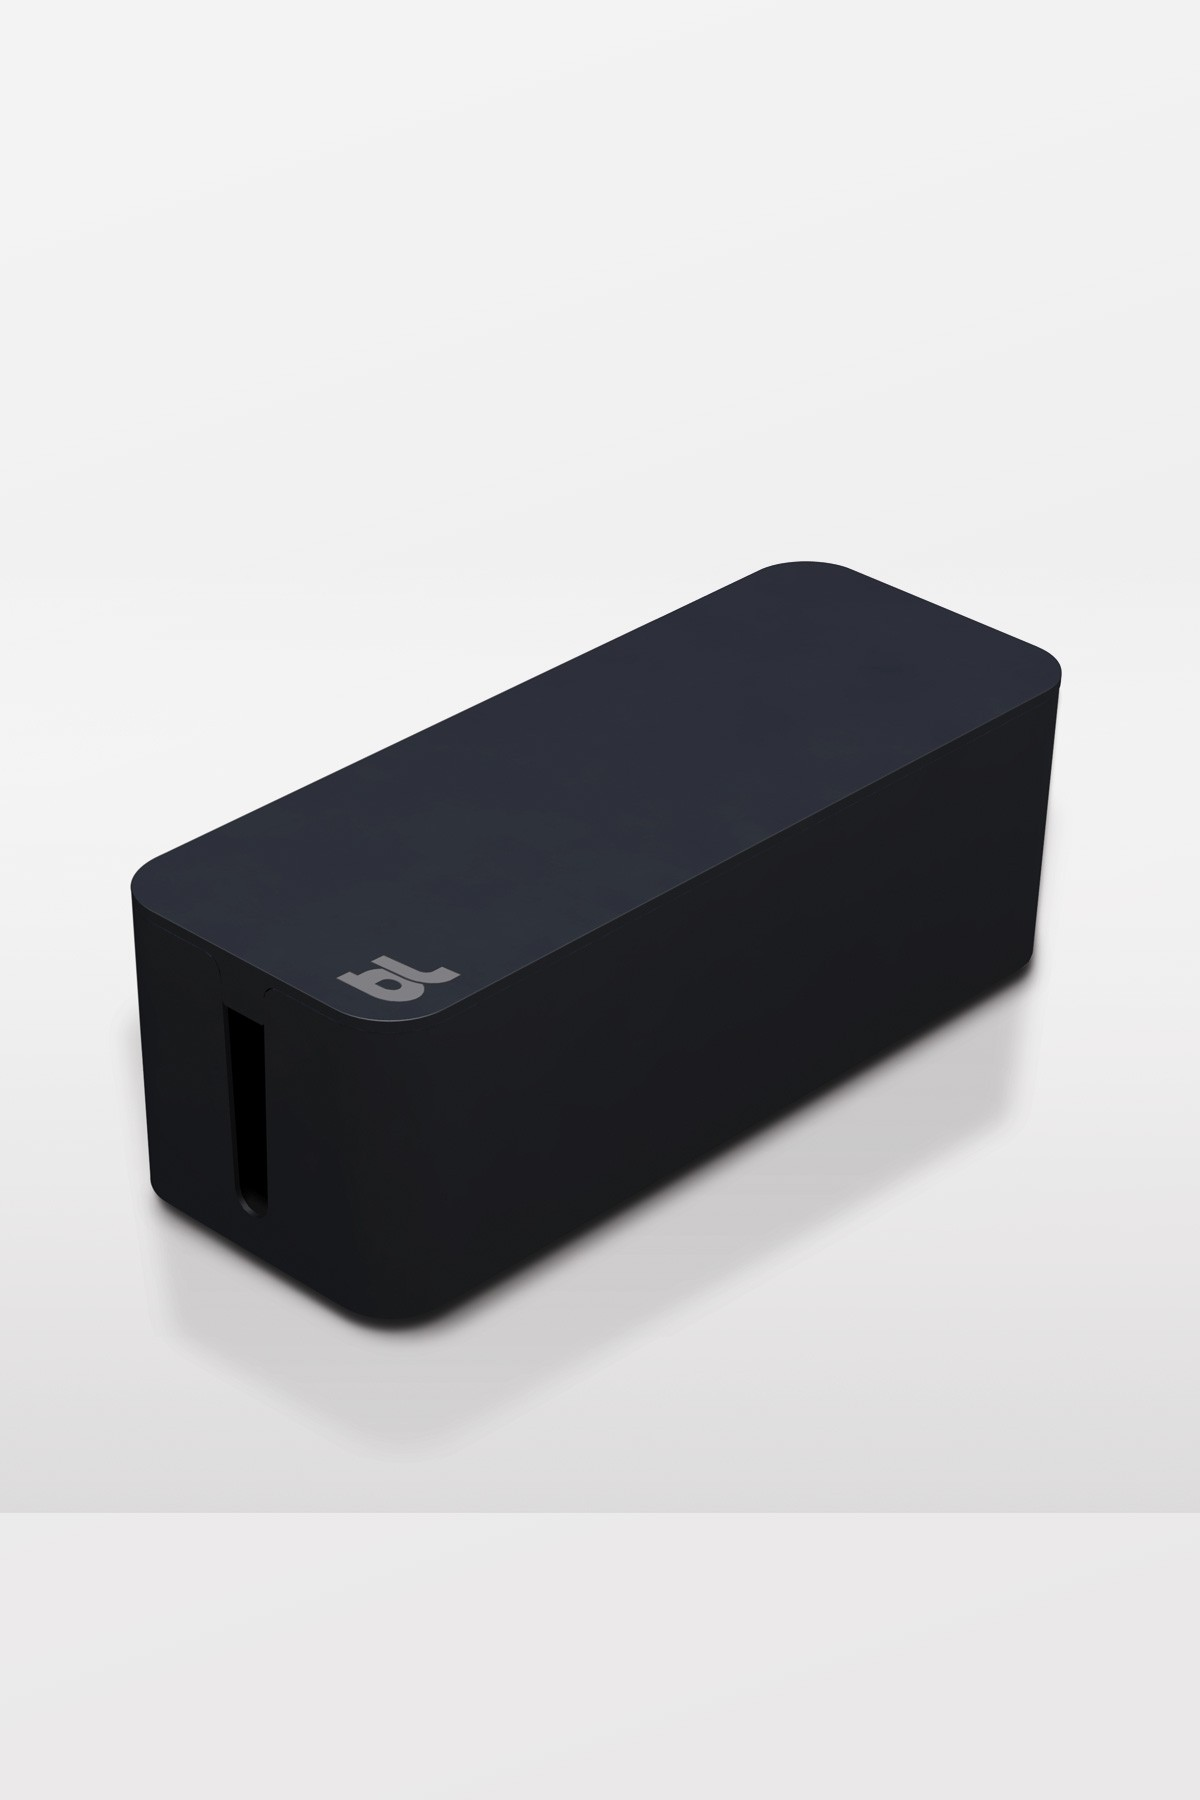 Bluelounge Cablebox - Black